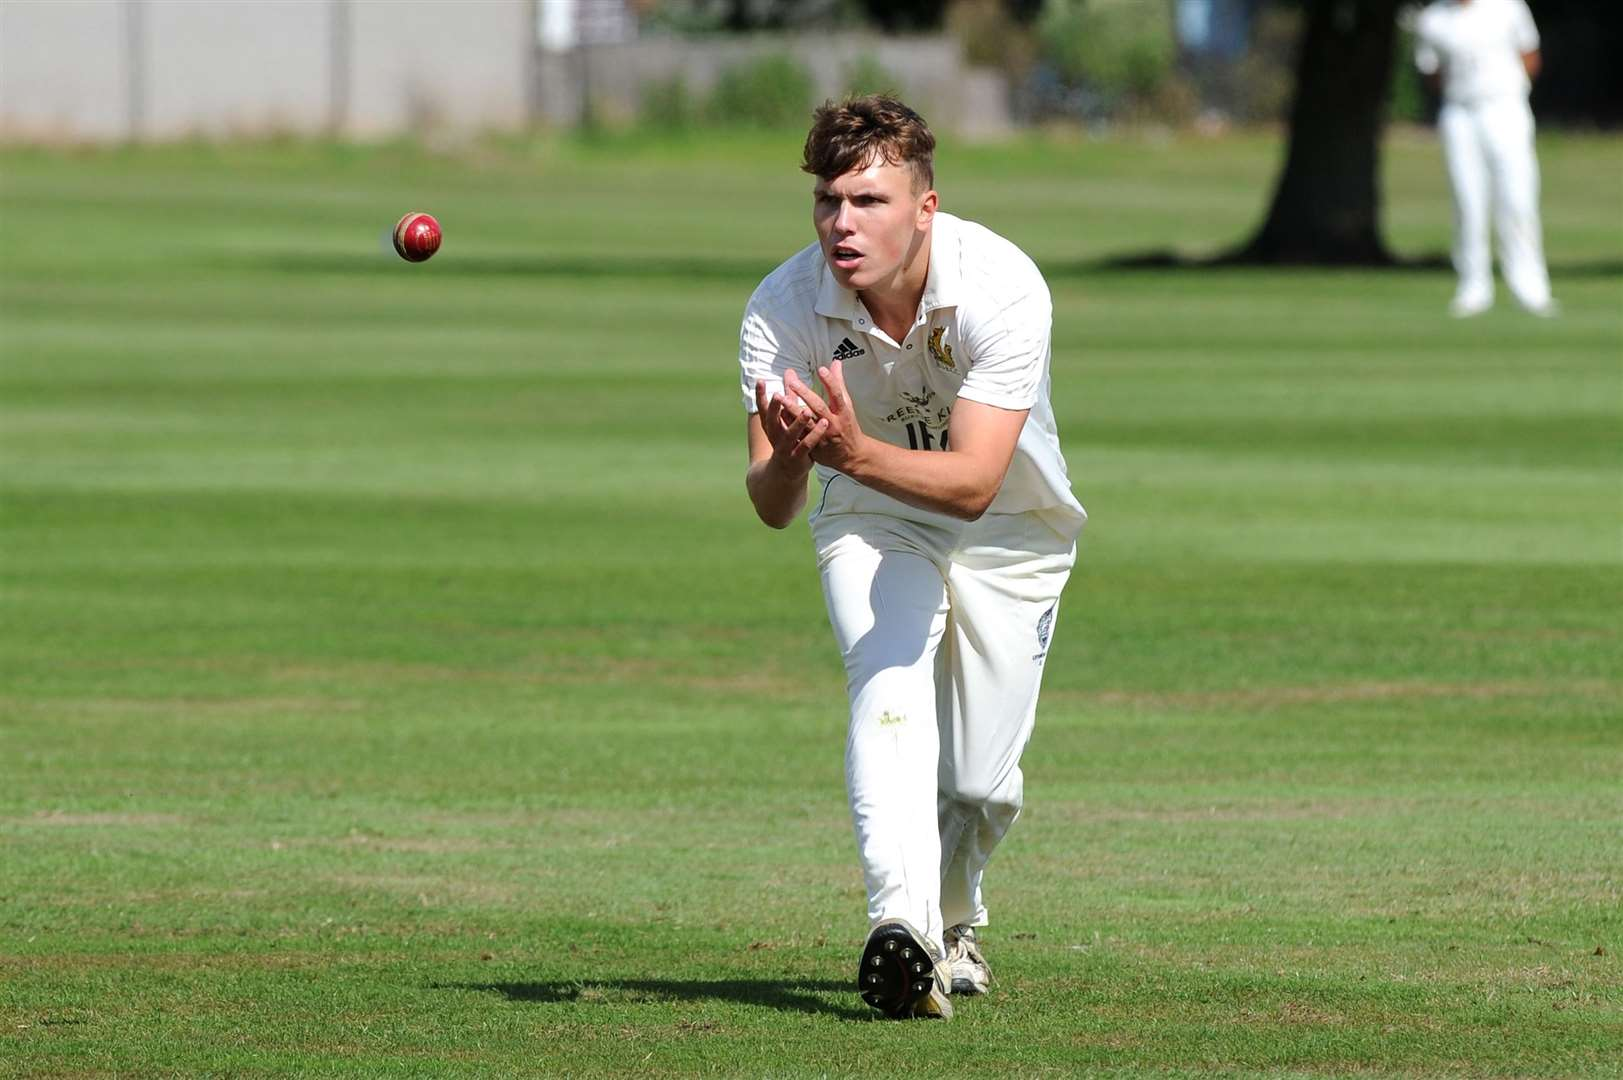 CRICKET - Bury St Edmunds (Bowling) v Horsford..Pictured: George Loyd...PICTURE: Mecha Morton... .. (12566558)